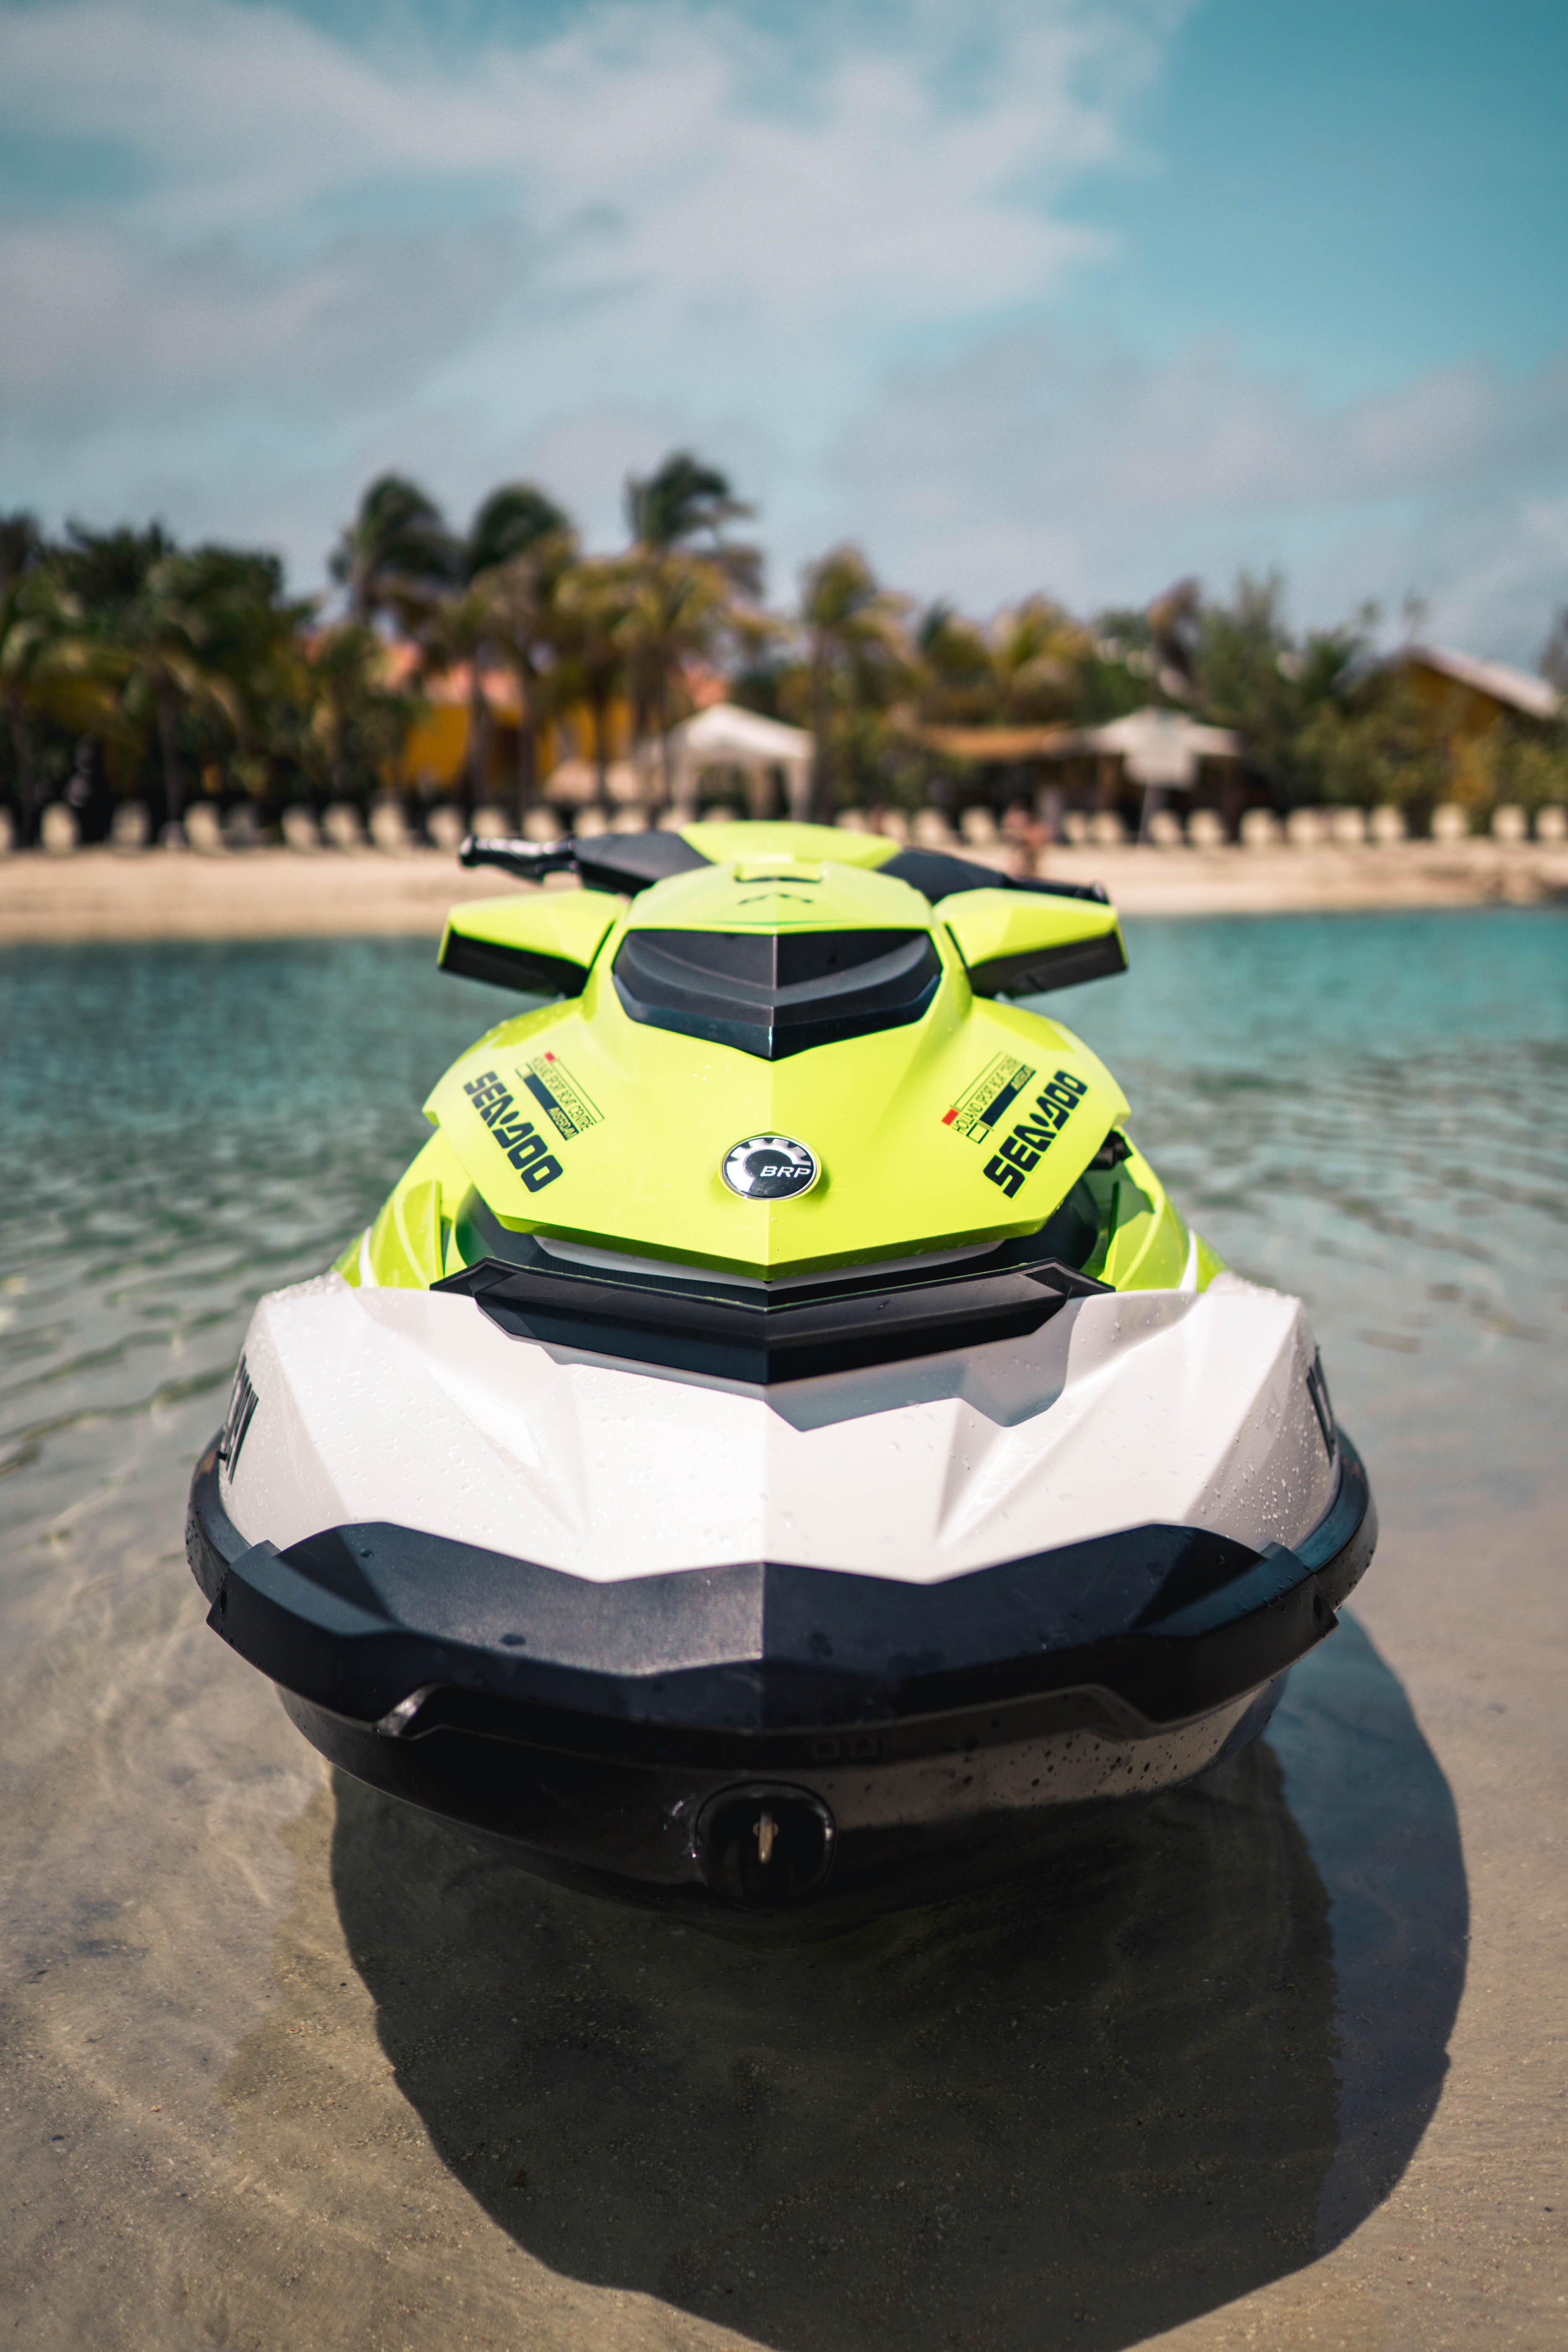 Chill Ride 4 Jetskis - 1P each - 1 hour